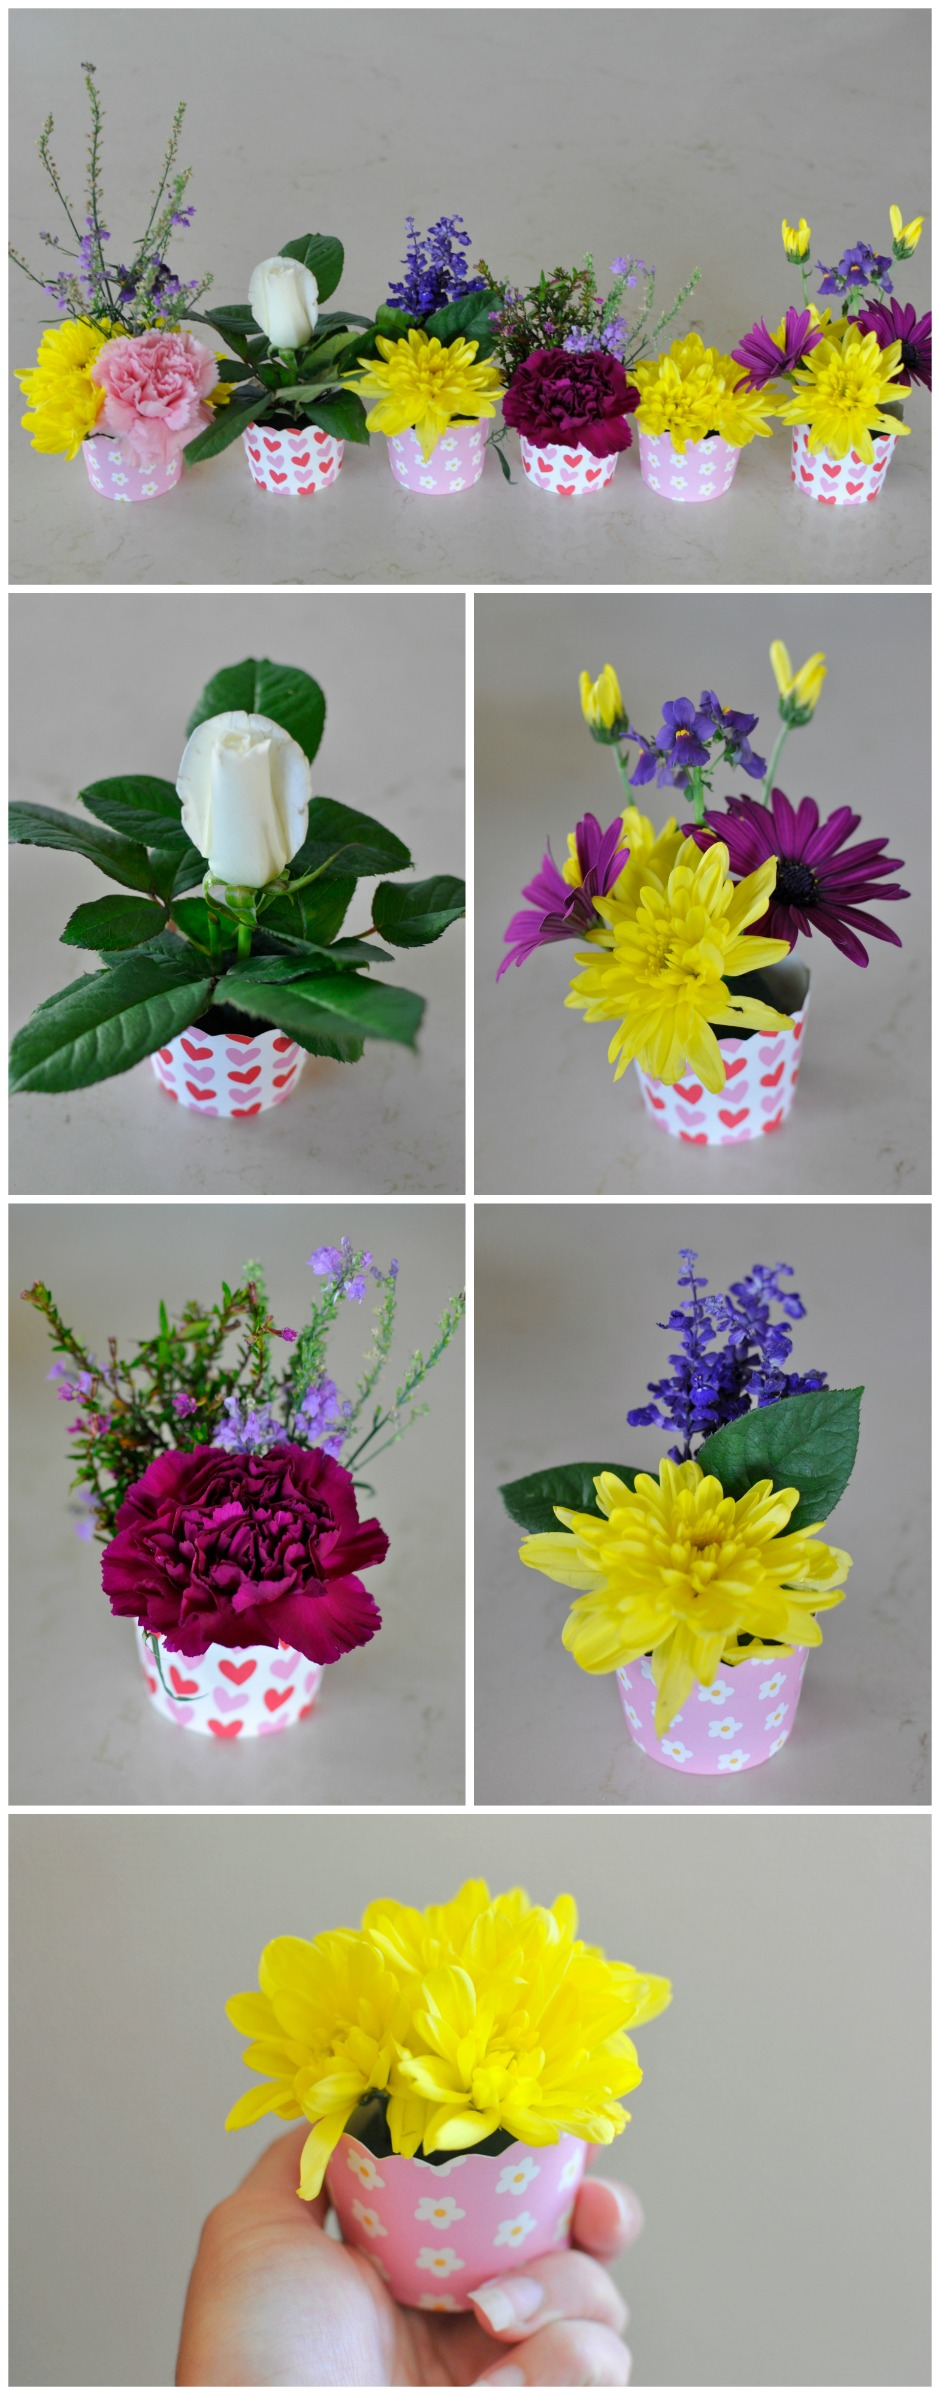 Mother's Day Gift Idea: Use a decorative cupcake case to make a mini flower arrangement. Kids could do it themselves!